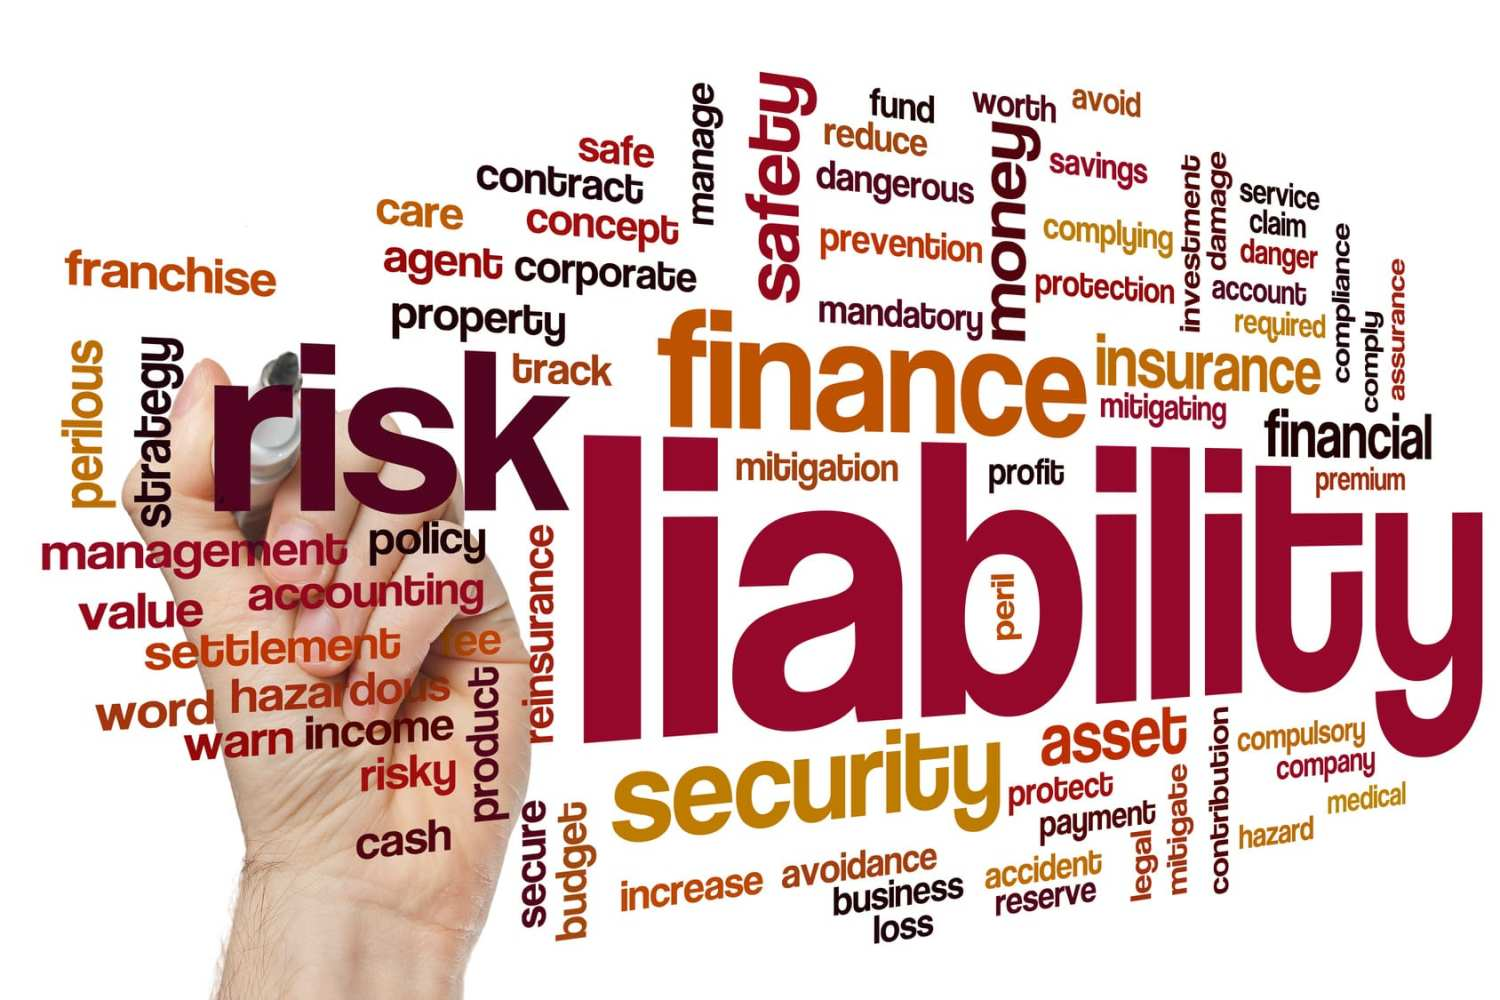 business liability insurance word cloud